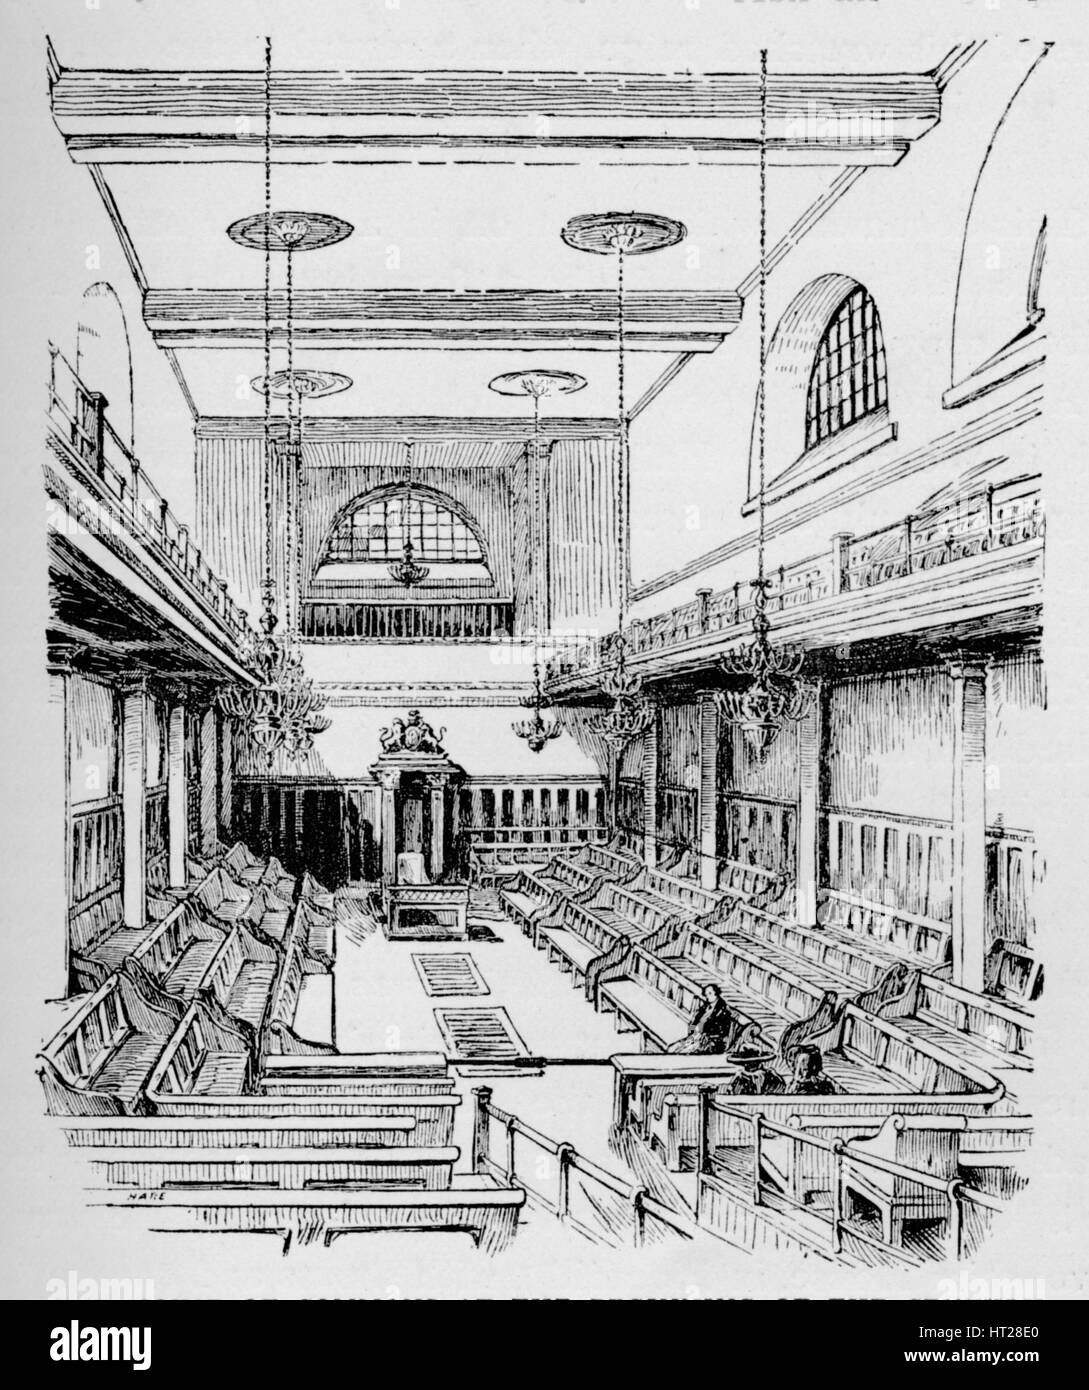 'The House of Commons at the Beginning of the Century', c1897. Artist: William Patten. - Stock Image